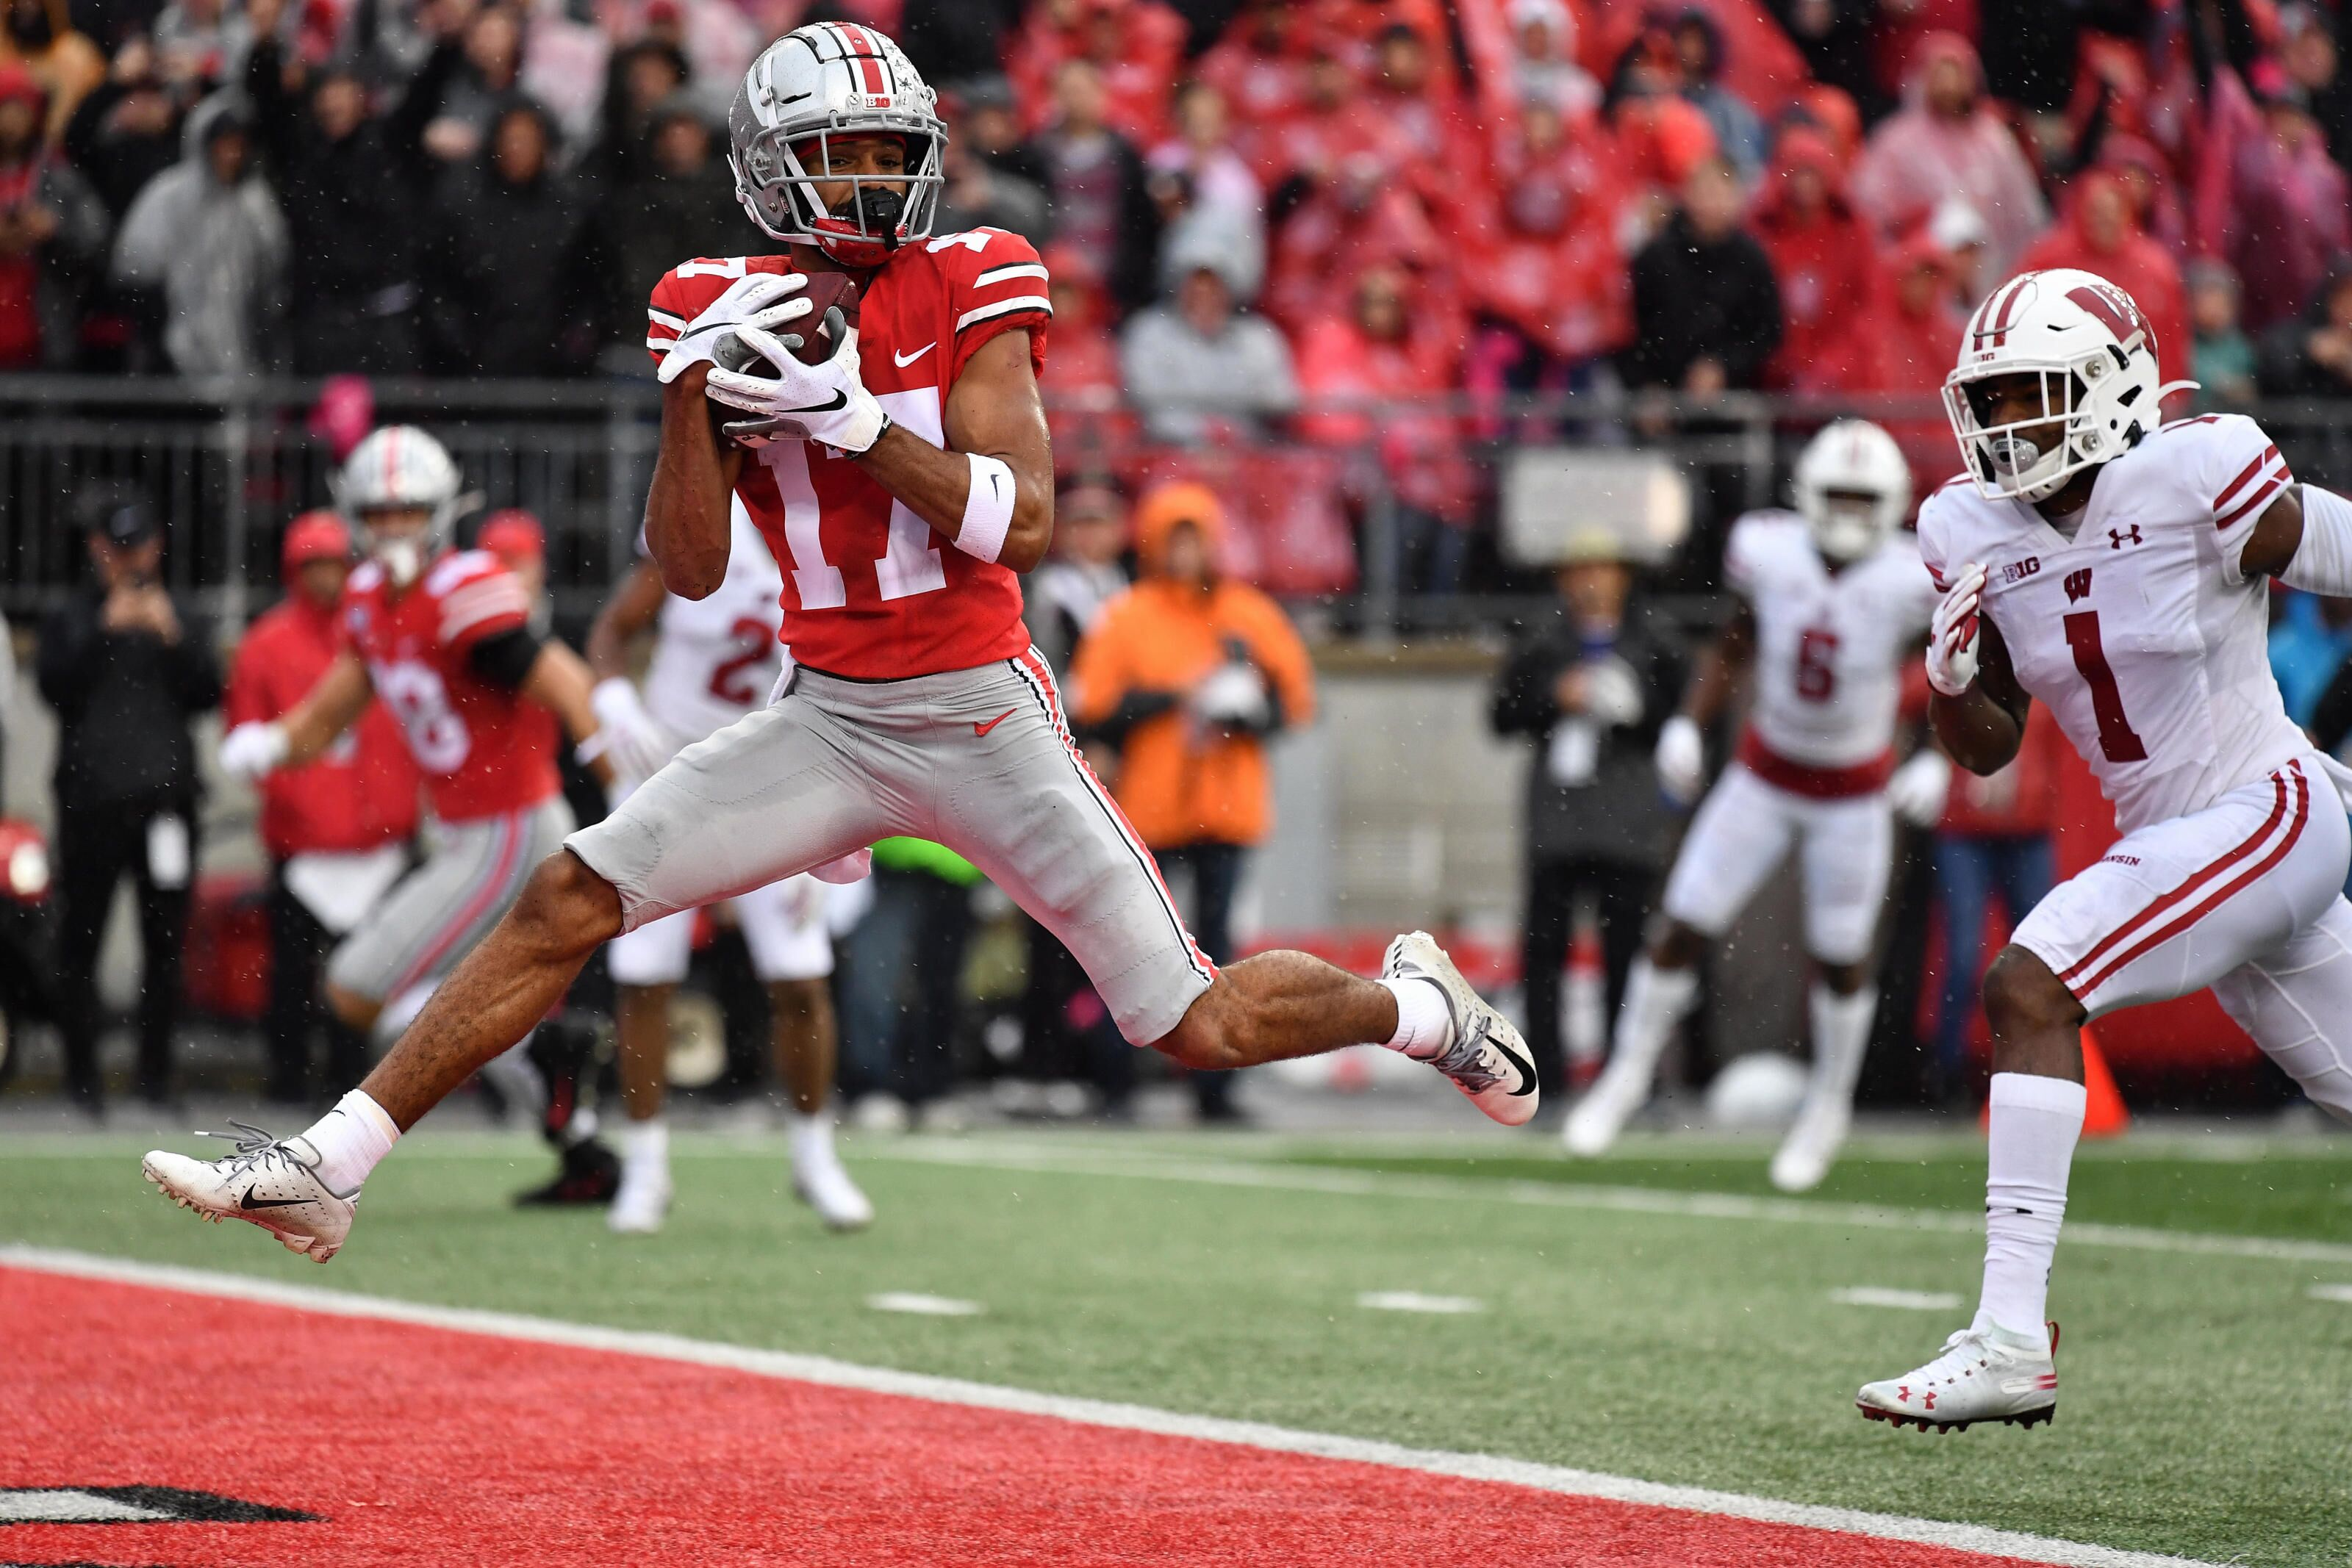 Ohio State Football Best Buckeye Team In Program History